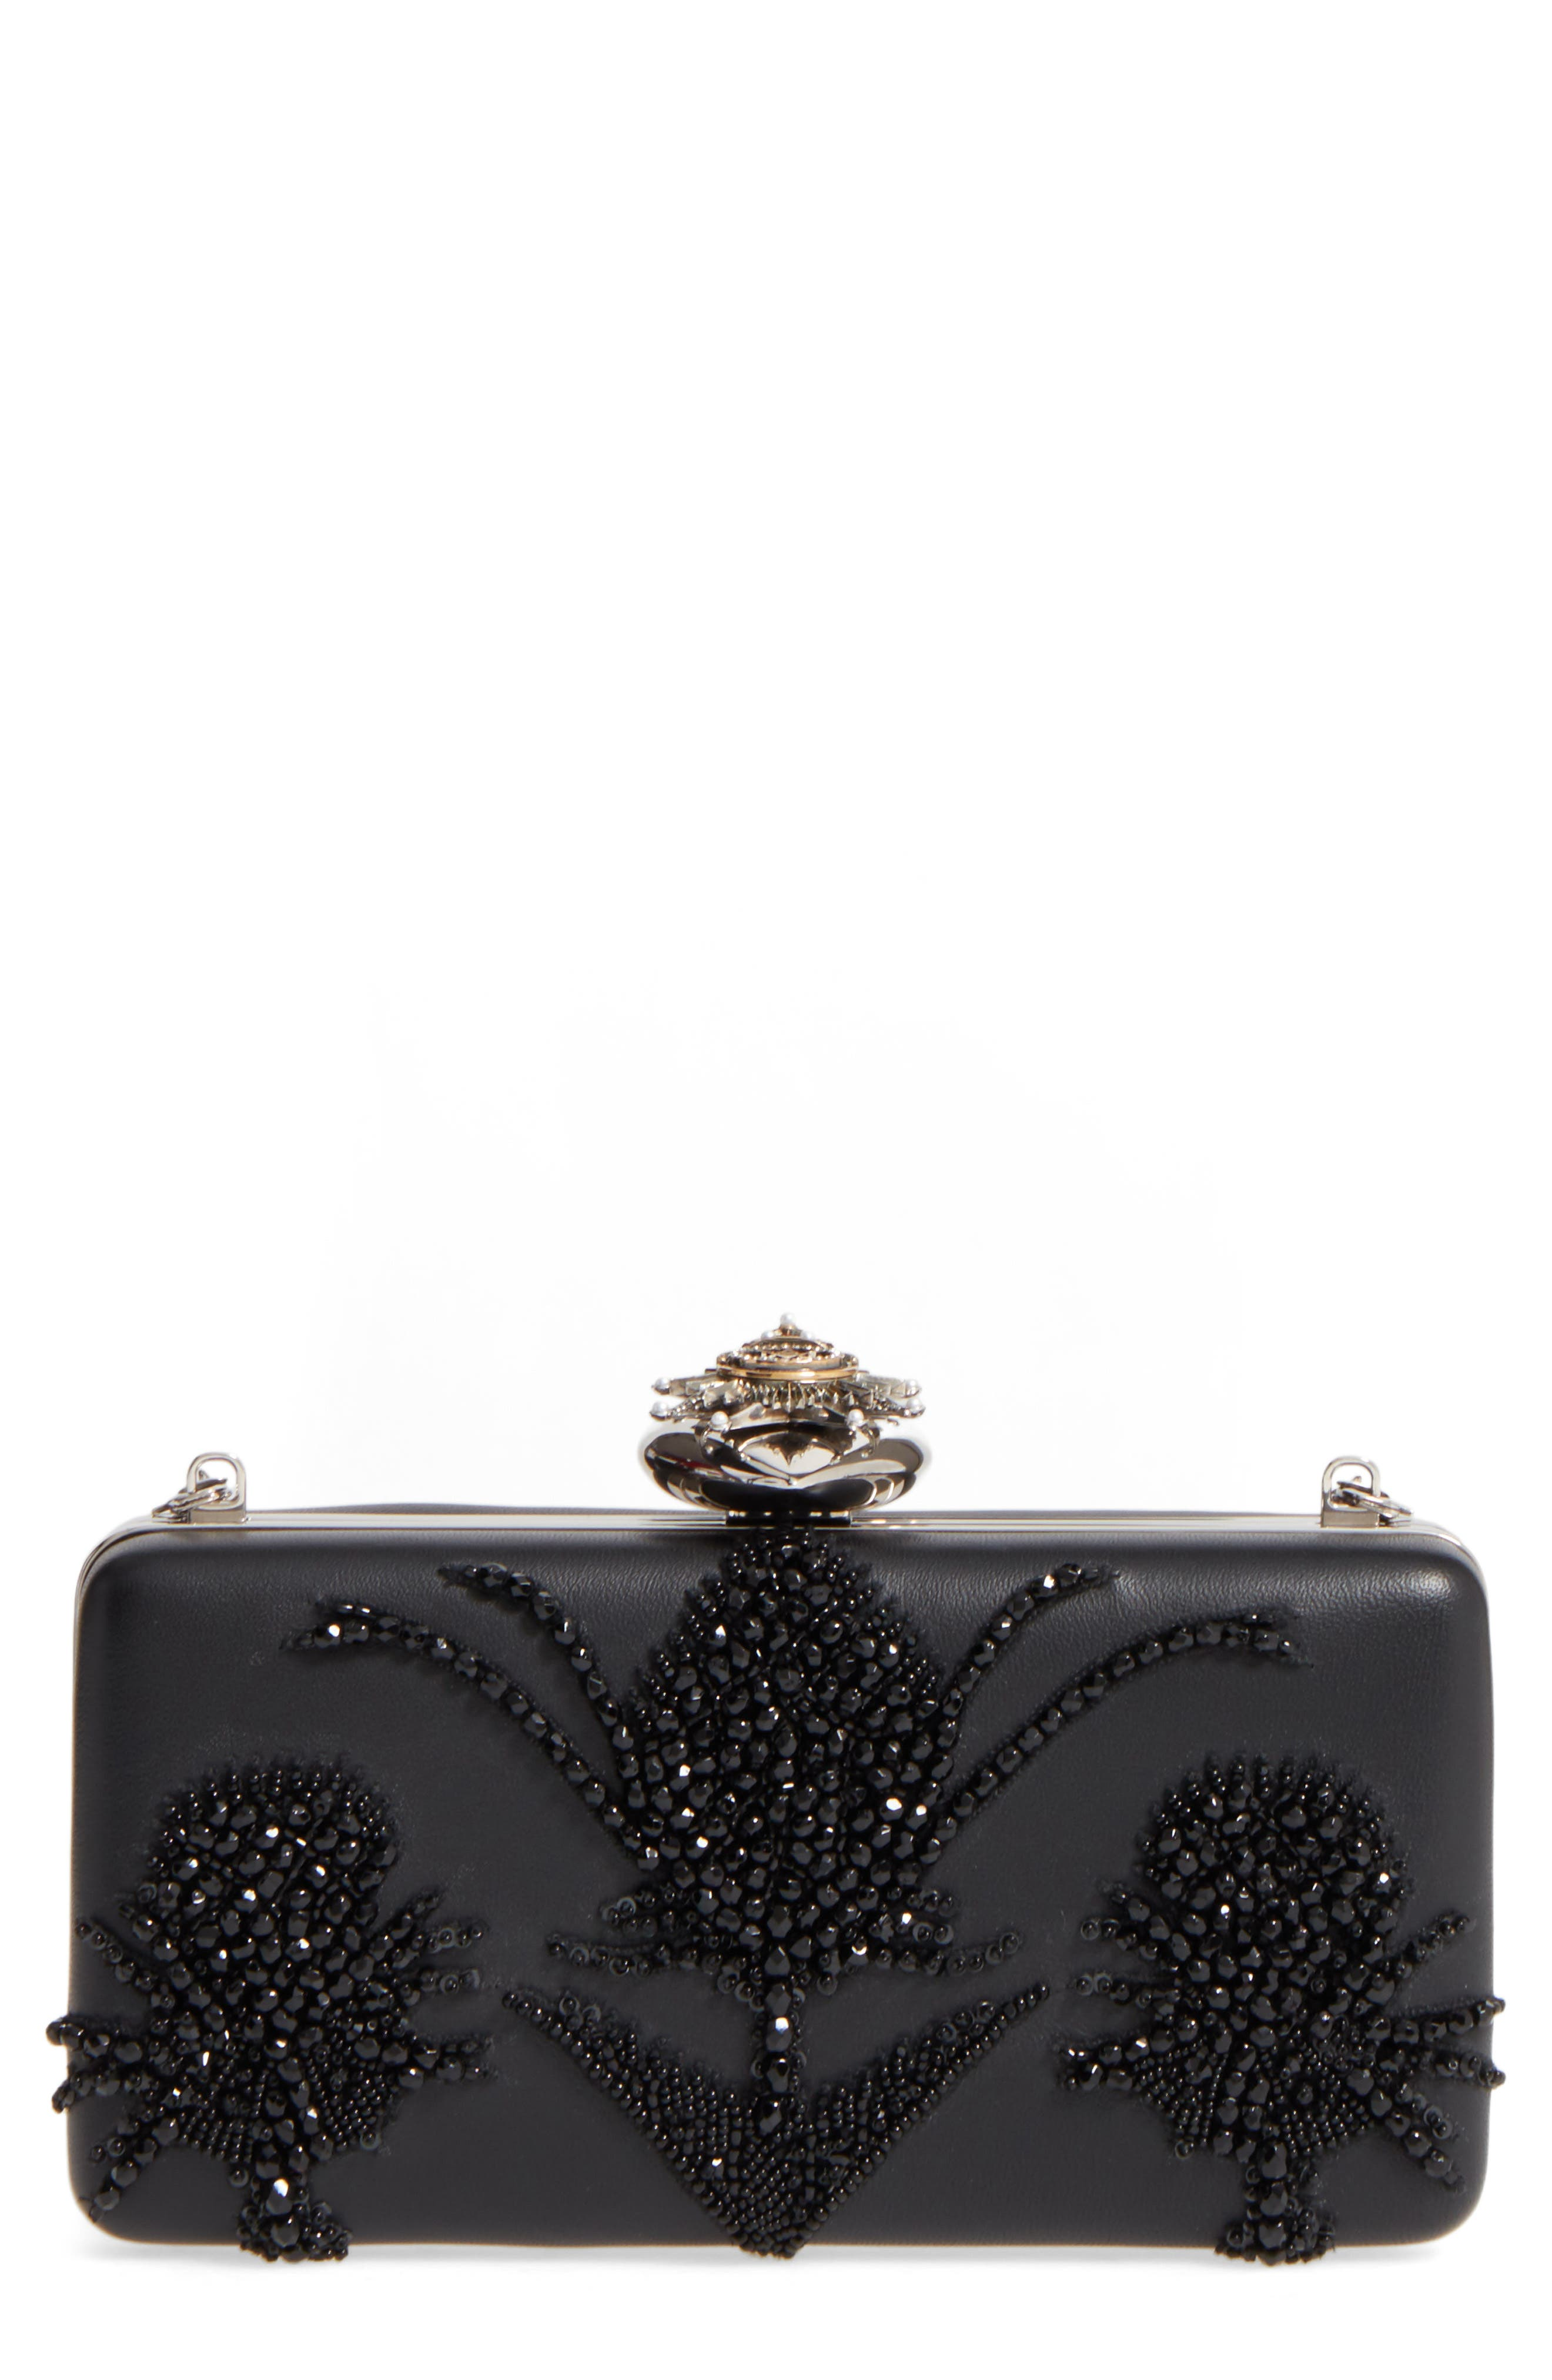 Main Image - Alexander McQueen Embellished Nappa Leather Clutch